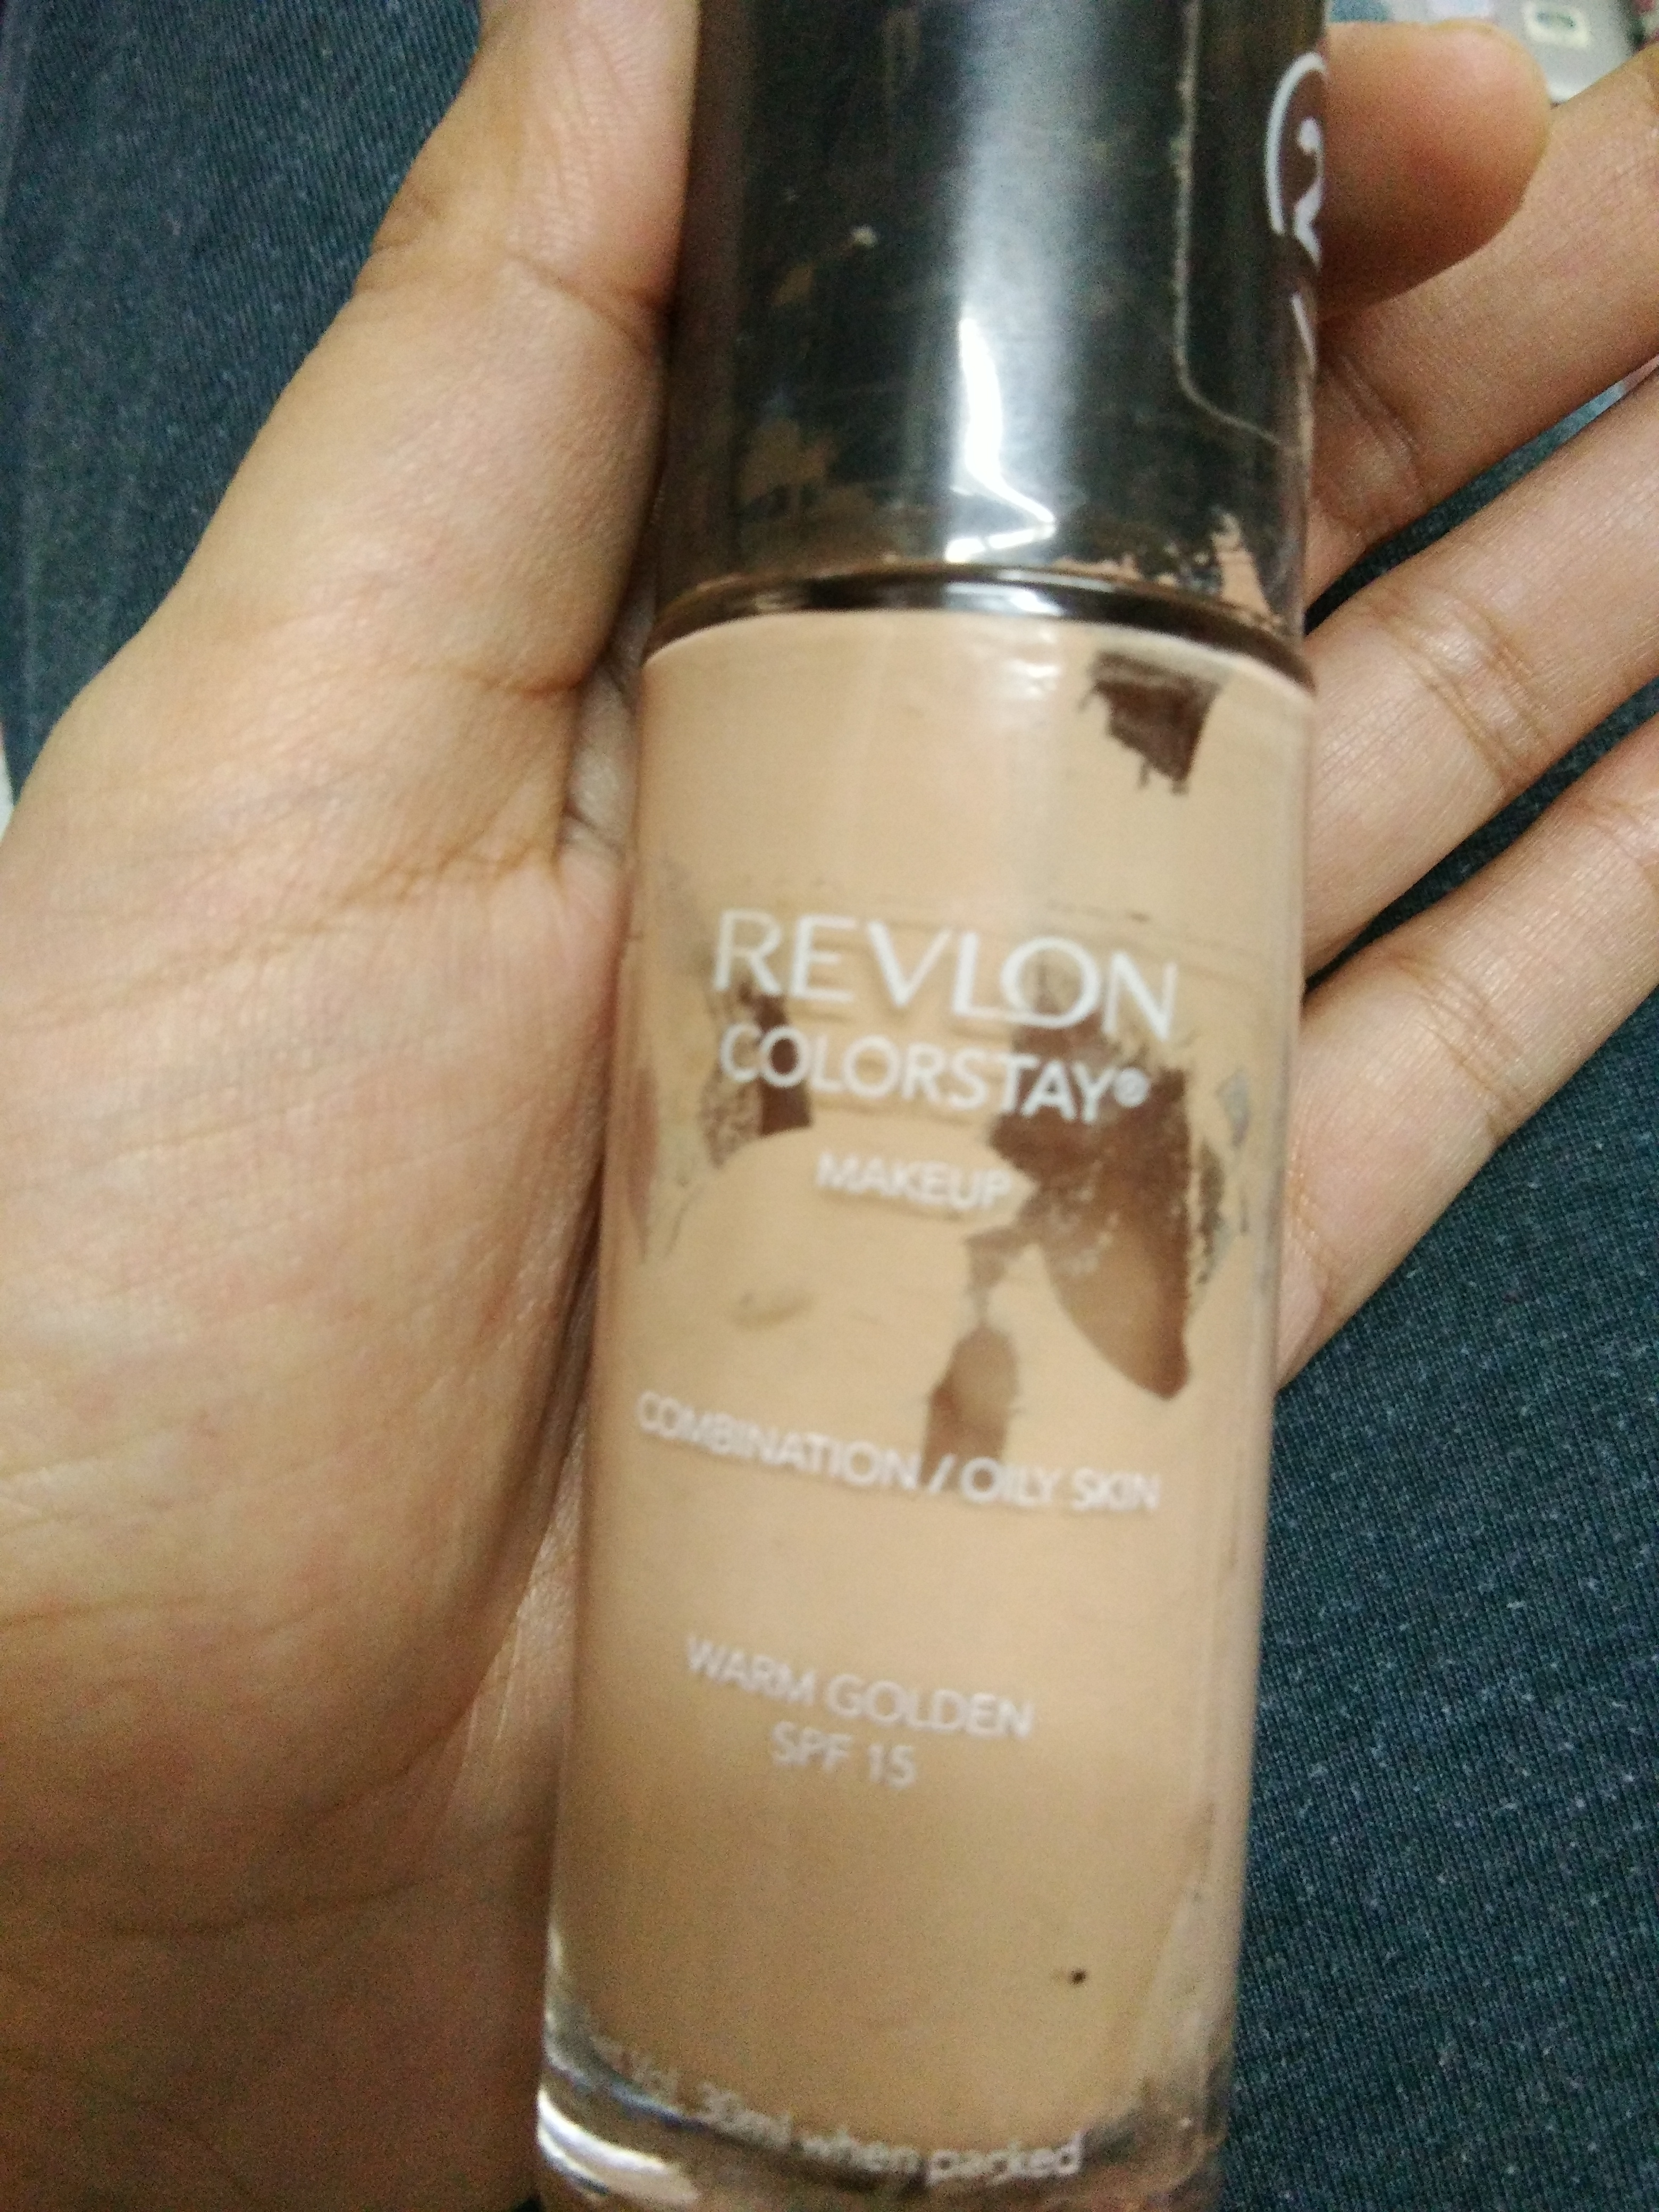 Revlon Colorstay Makeup For Combination/Oily Skin-Good buy-By komal24